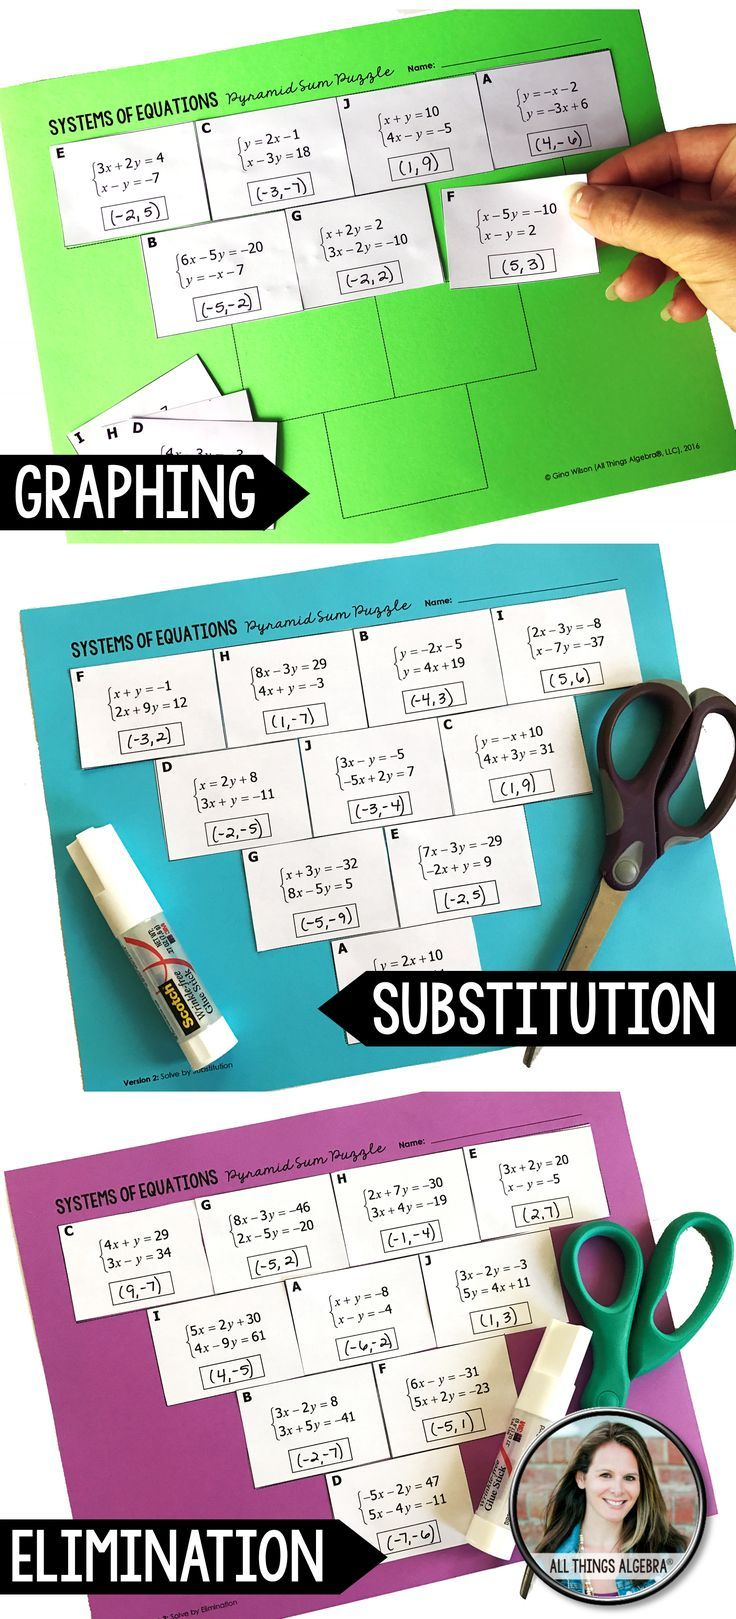 Systems of Equations Pyramid Sum Puzzles (3 puzzles included ...